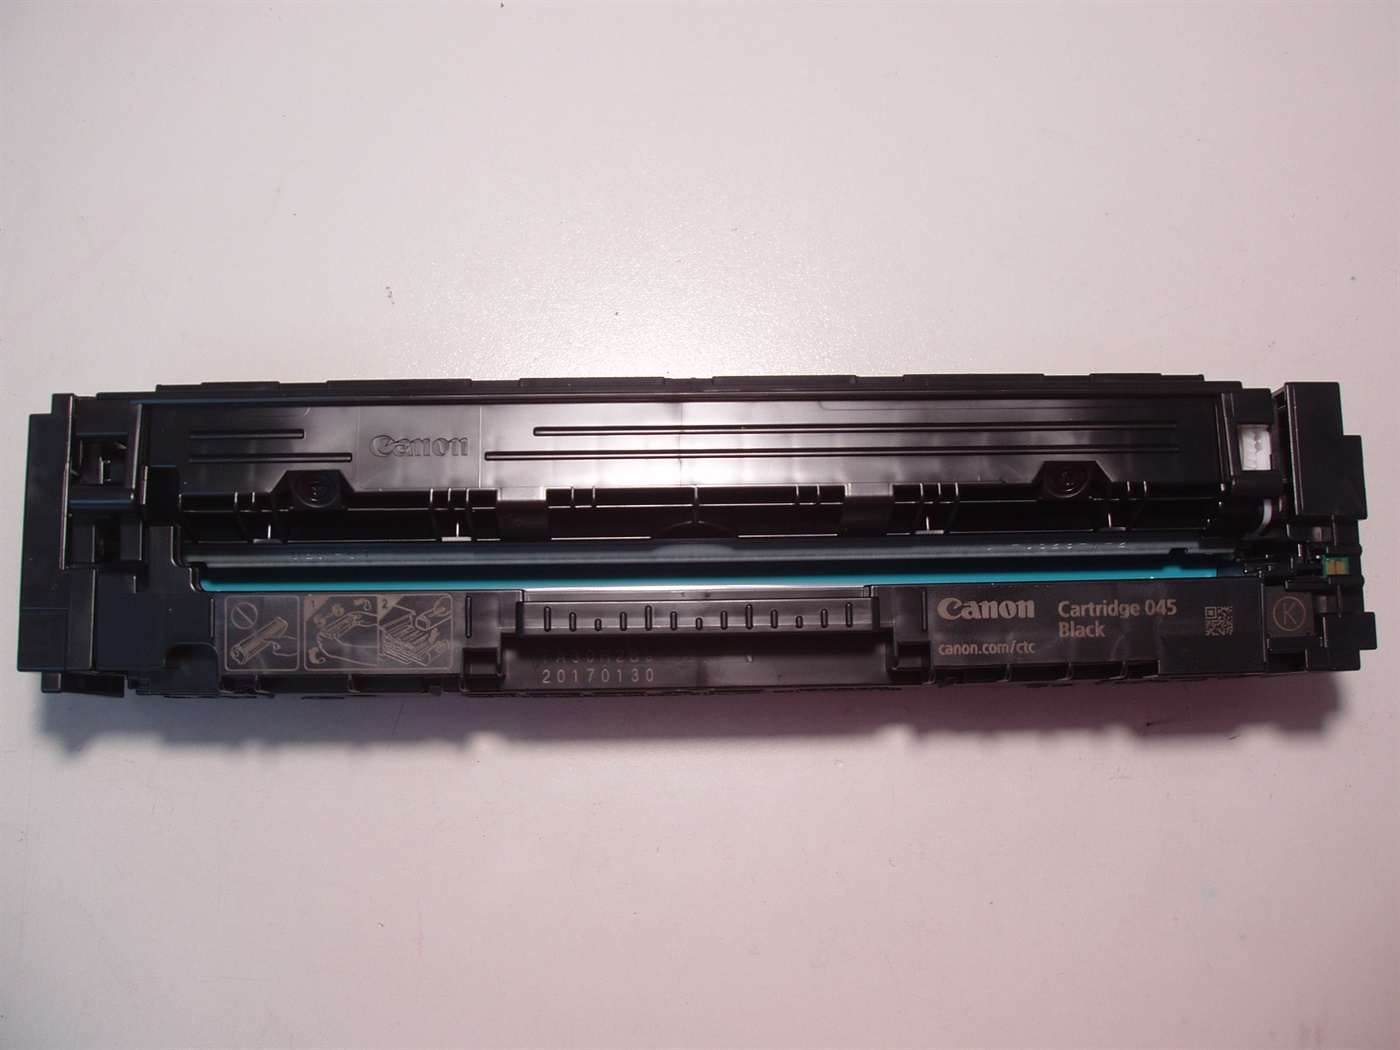 CANON CARTRIDGE 045 - BLACK